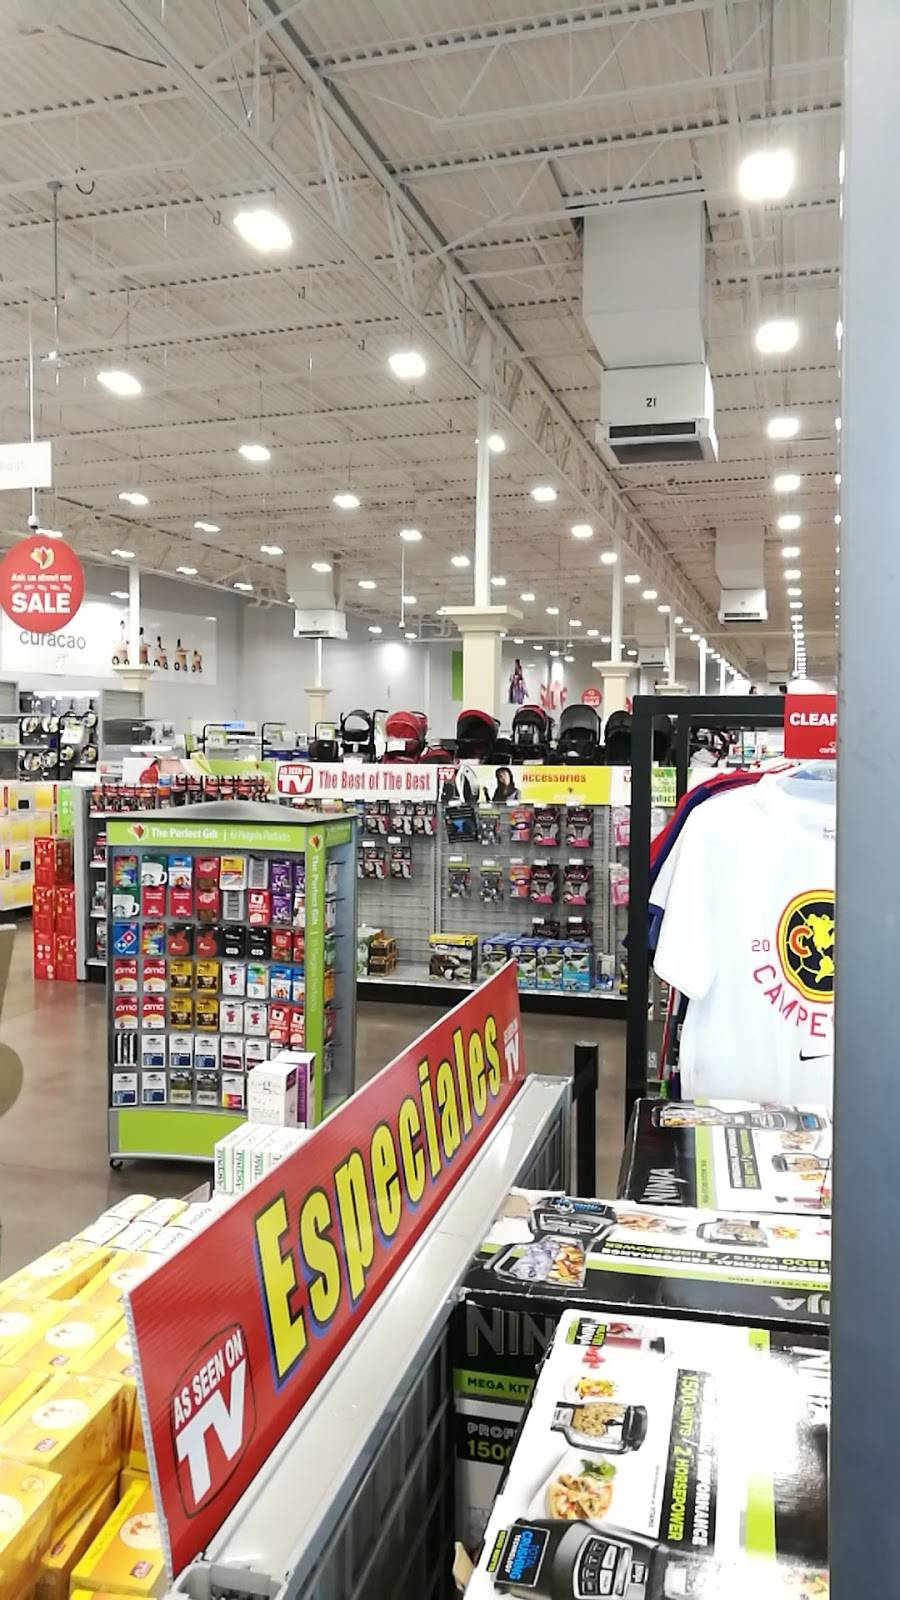 Curacao - department store  | Photo 3 of 10 | Address: 3390 S 6th Ave, Tucson, AZ 85713, USA | Phone: (520) 576-5565